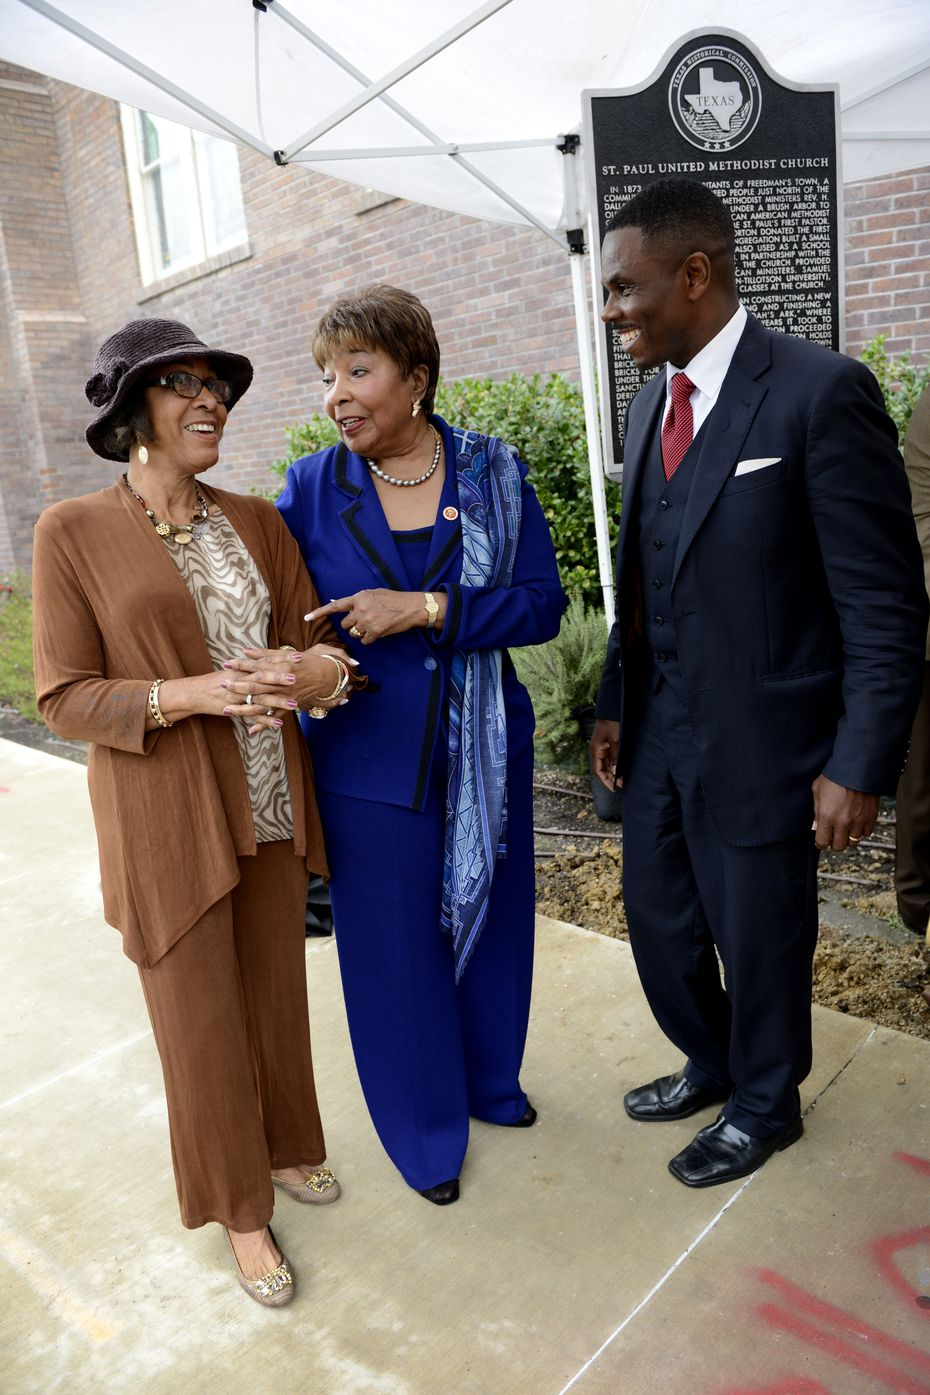 Pastor Richie Butler and Rep. Eddie Bernice Johnson (middle) talked to fourth-generation St. Paul United Methodist Church member O'Shelia Moore Brown during the historical marker dedication ceremony at St. Paul United Methodist Church in Dallas on Nov. 22, 2014.